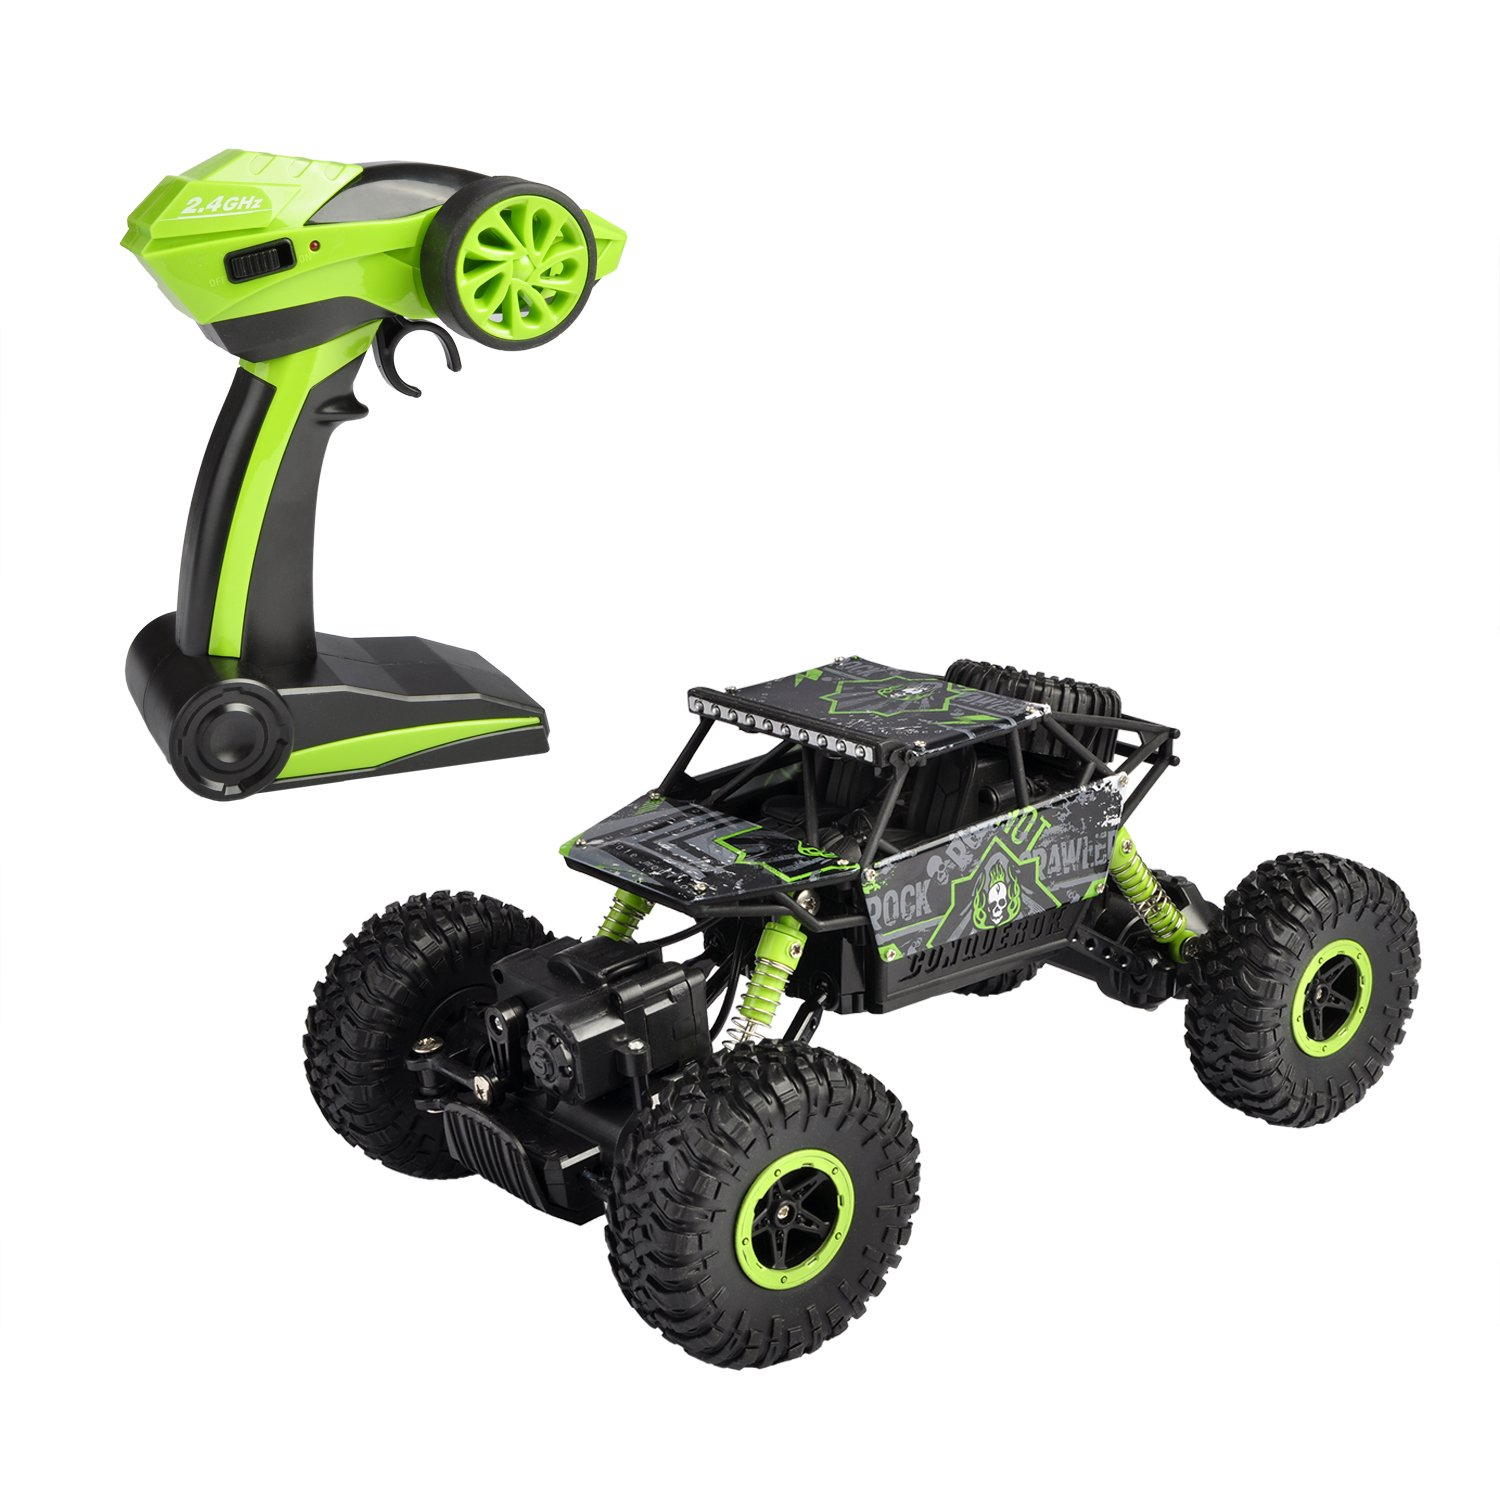 Hapinic RC Car 4WD 2.4Ghz 1/18 Crawlers Off Road Vehicle Toy Remote Control Car Green Color with Two Battery